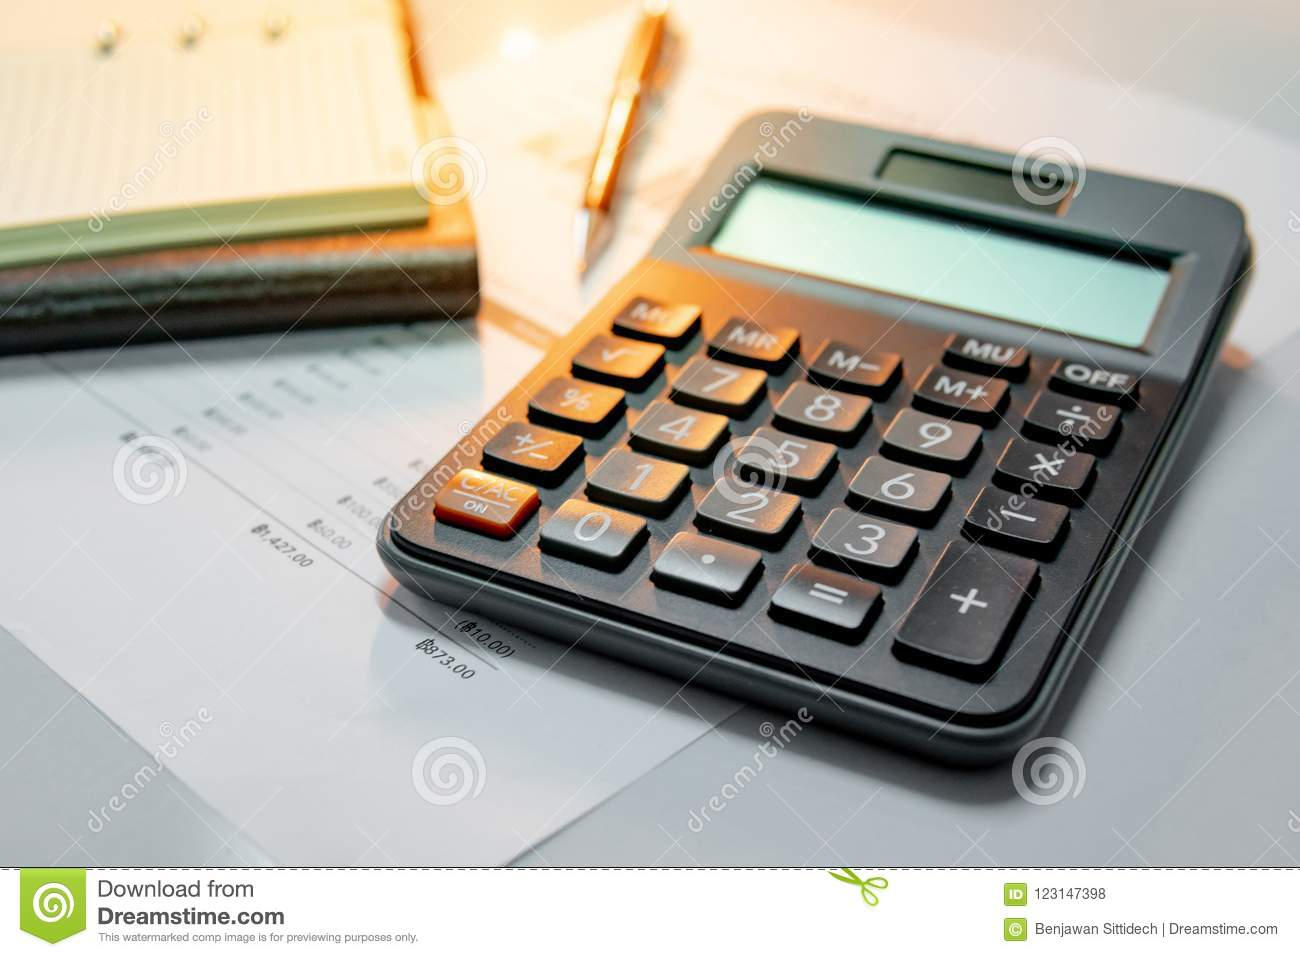 Calculator, notebook, pen and summary report paper